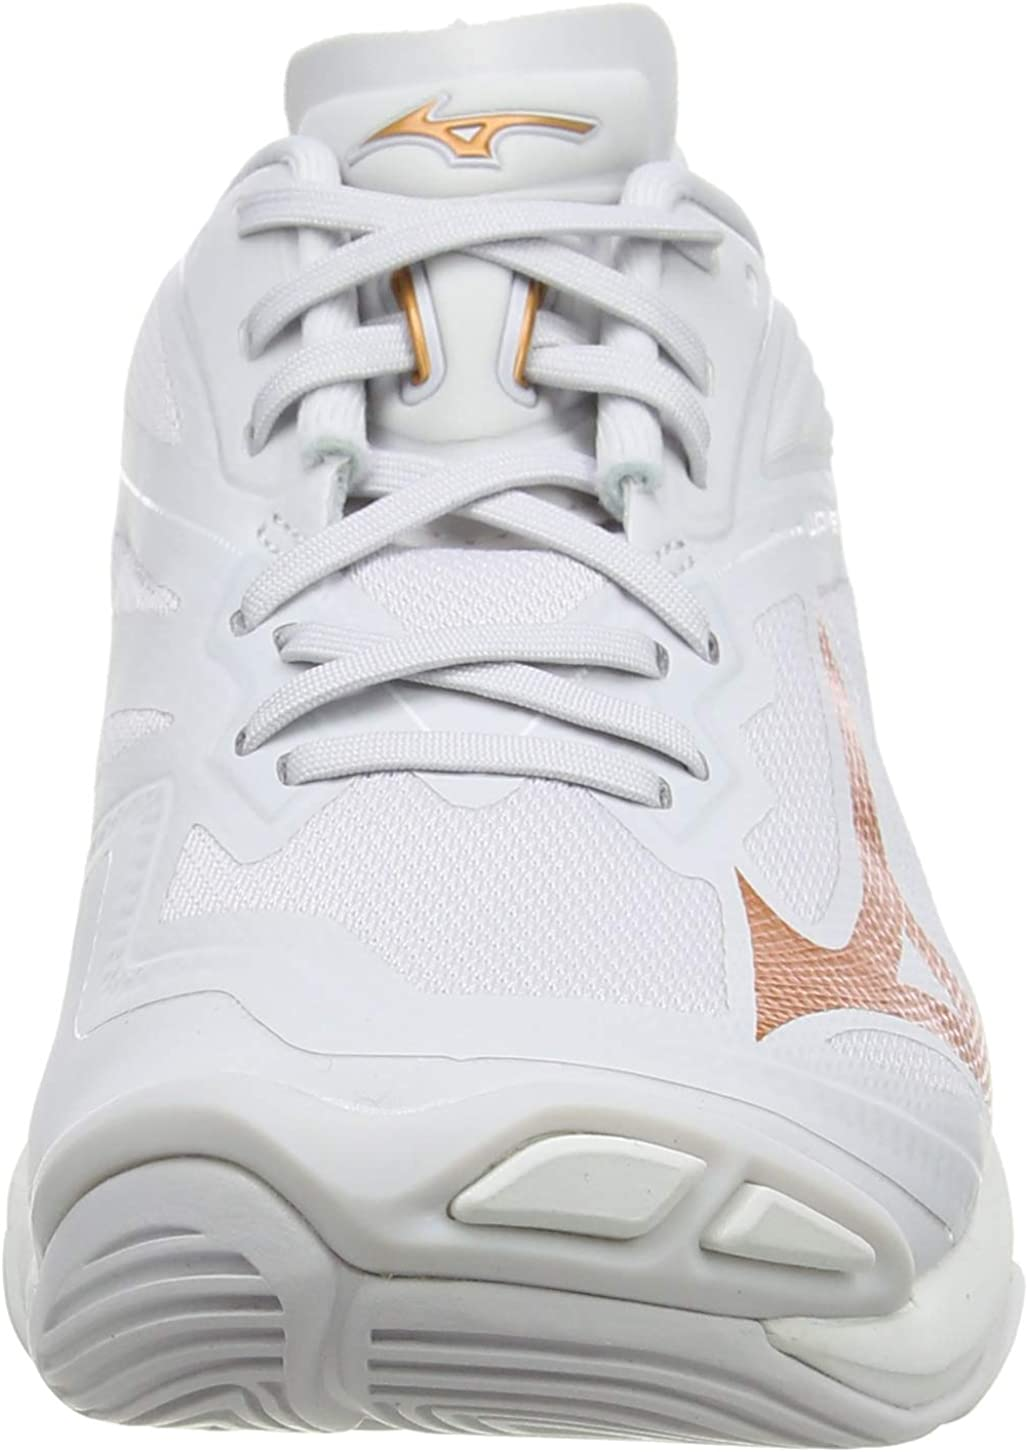 Wei/ß Nimbus Cloud//10135c//Wht 52 Mizuno Damen Wave Lightning Z6 Volleyballschuhe 38.5 EU